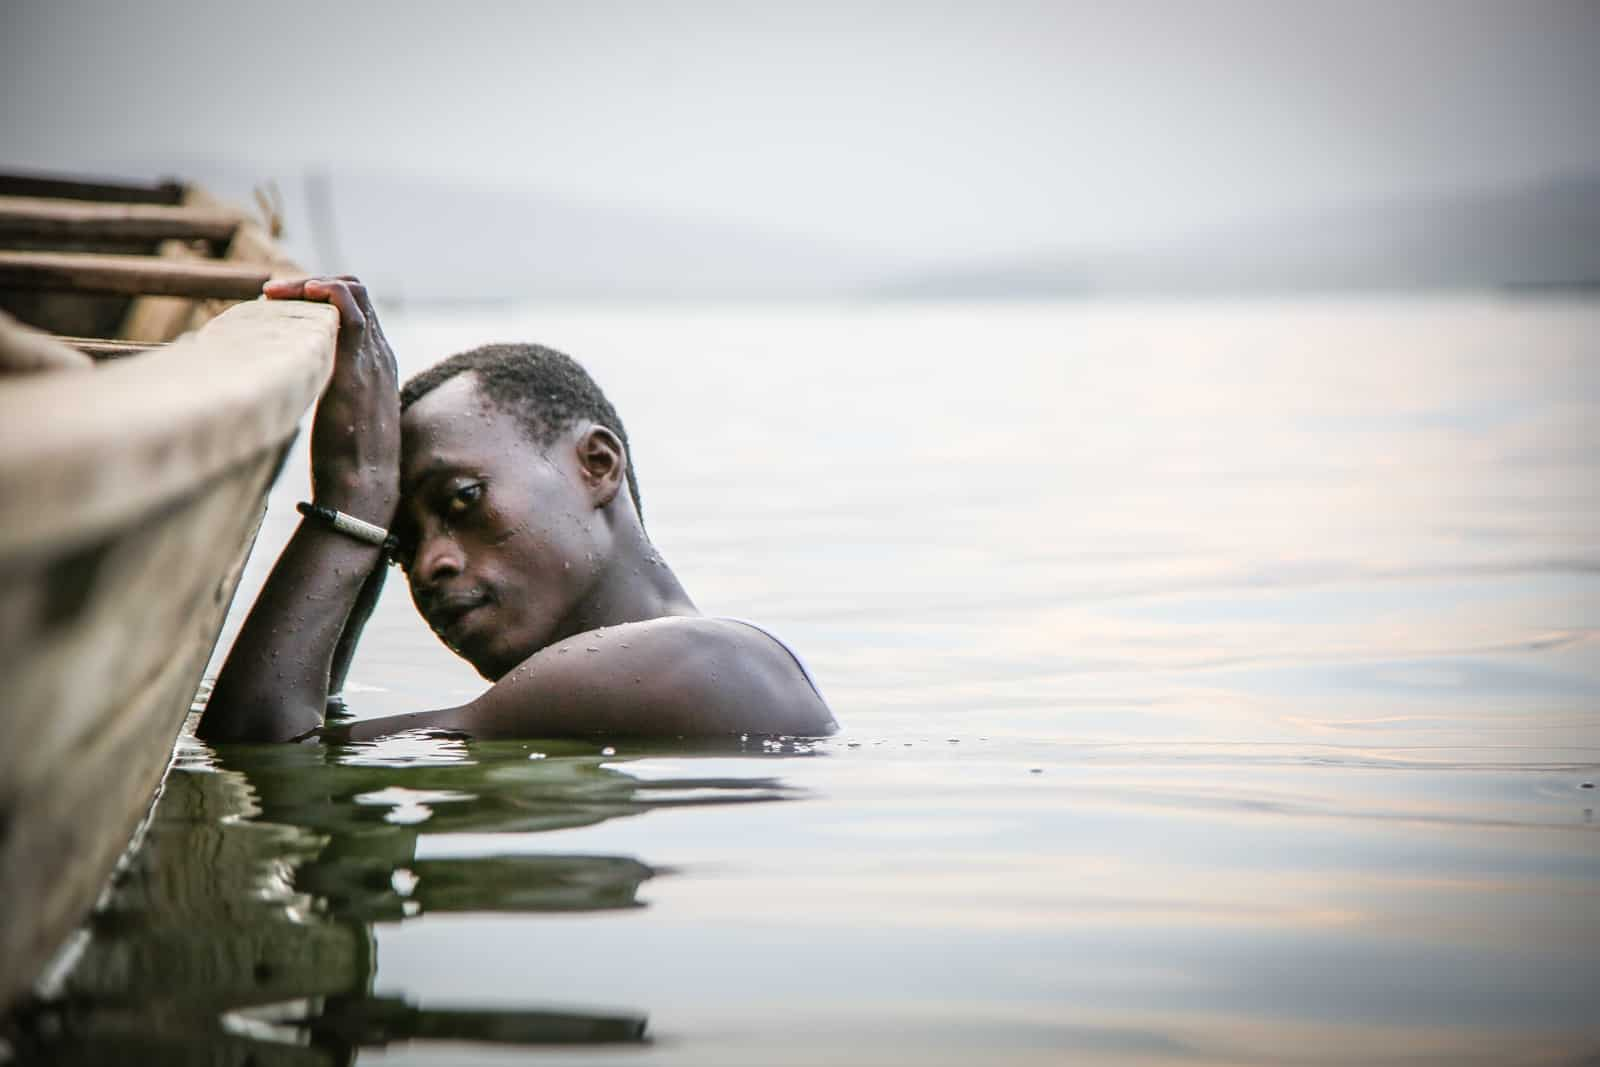 A man holds onto the side of a boat while his body is submerged in lake water